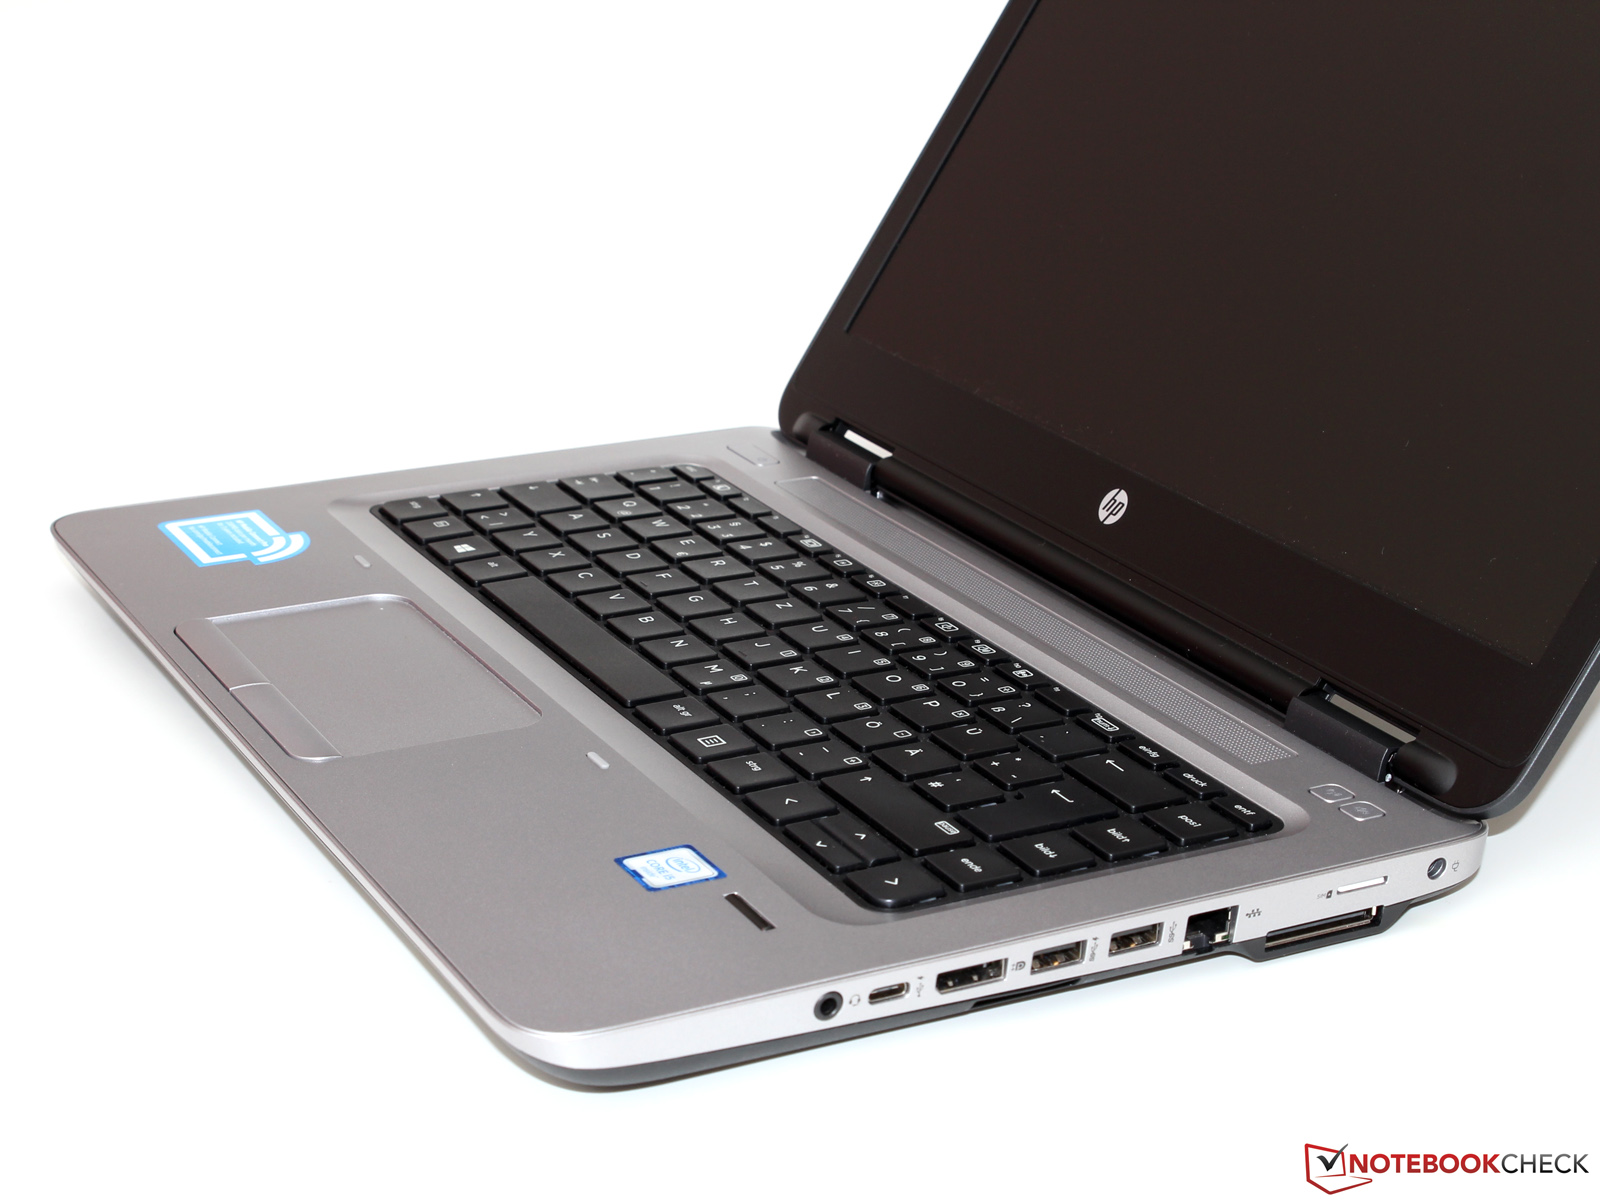 HP PROBOOK 650 G2 INTEL WLAN DRIVER FOR WINDOWS 7